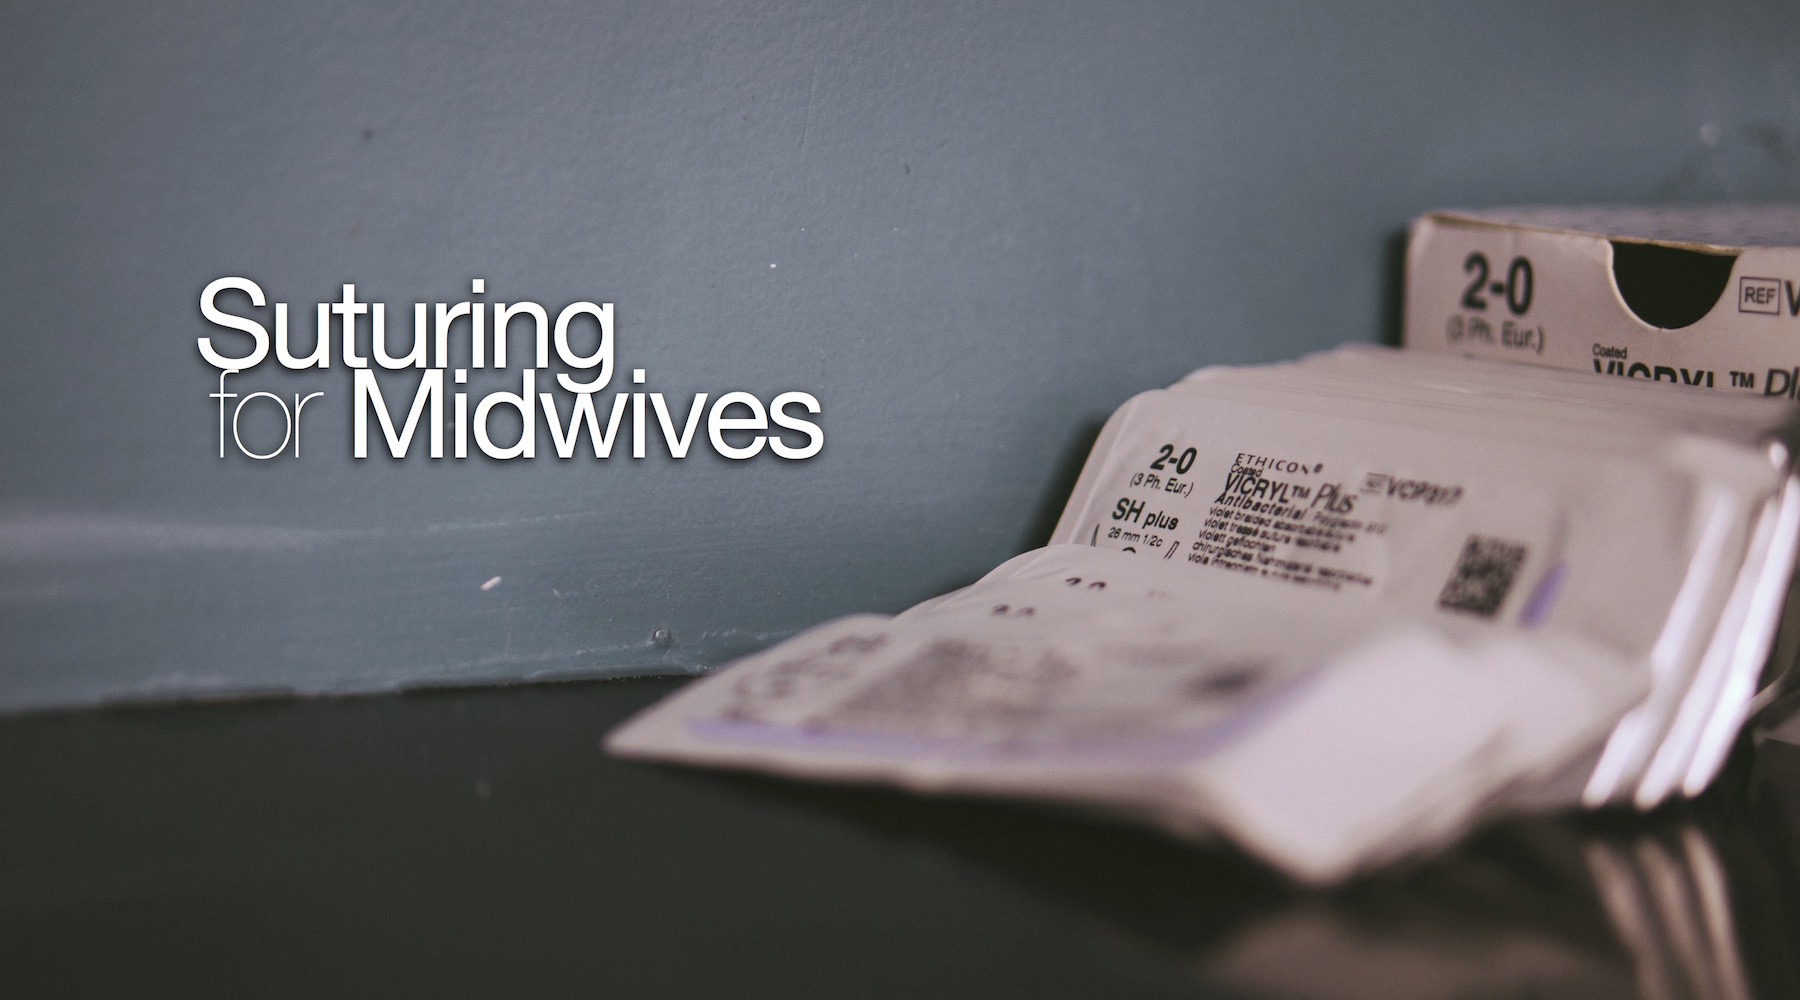 Suturing for Midwives cropped.jpg